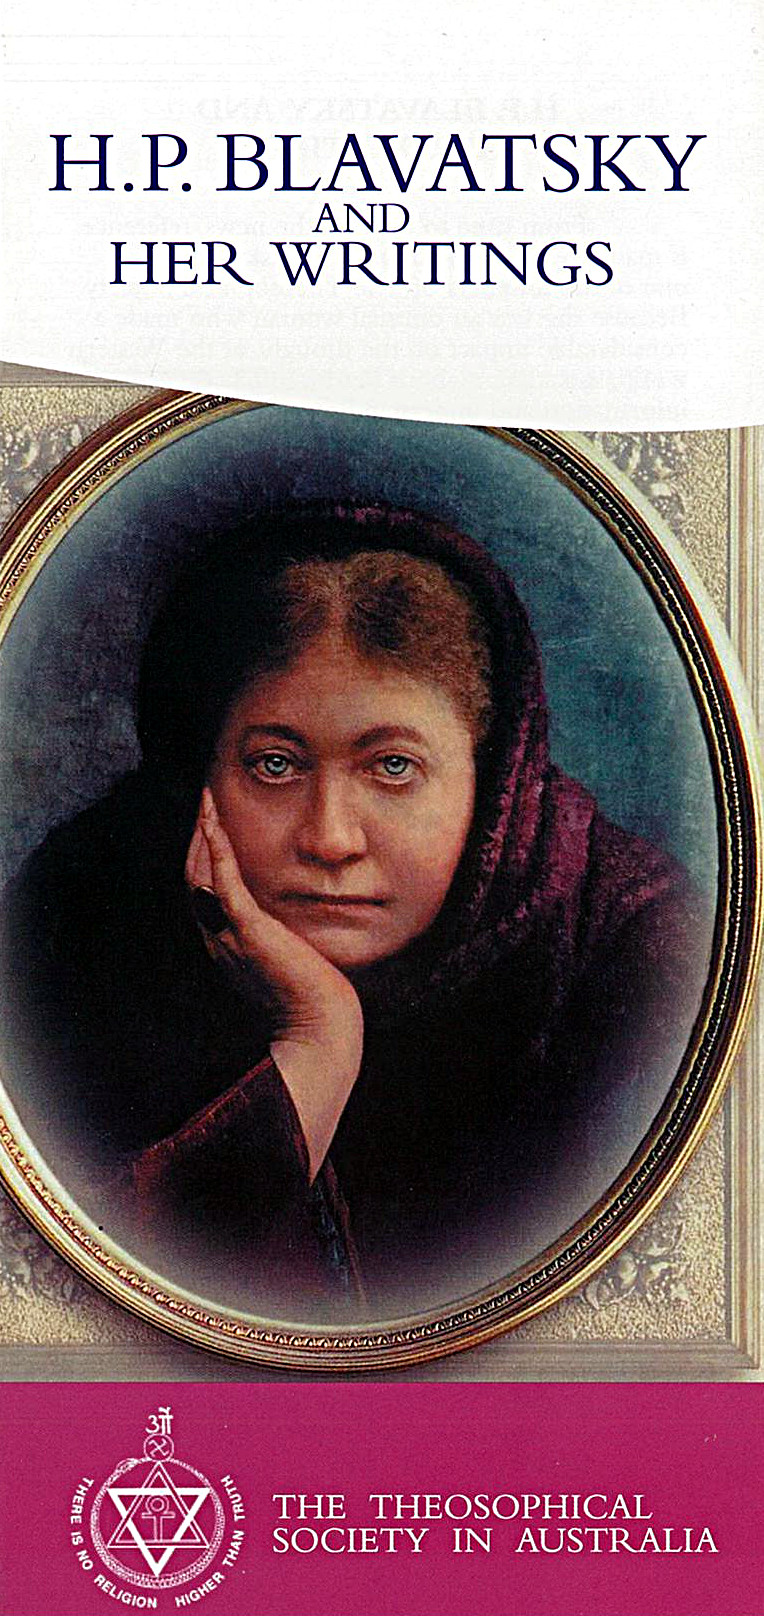 Leaflet: H.P. Blavatsky and Her Writings